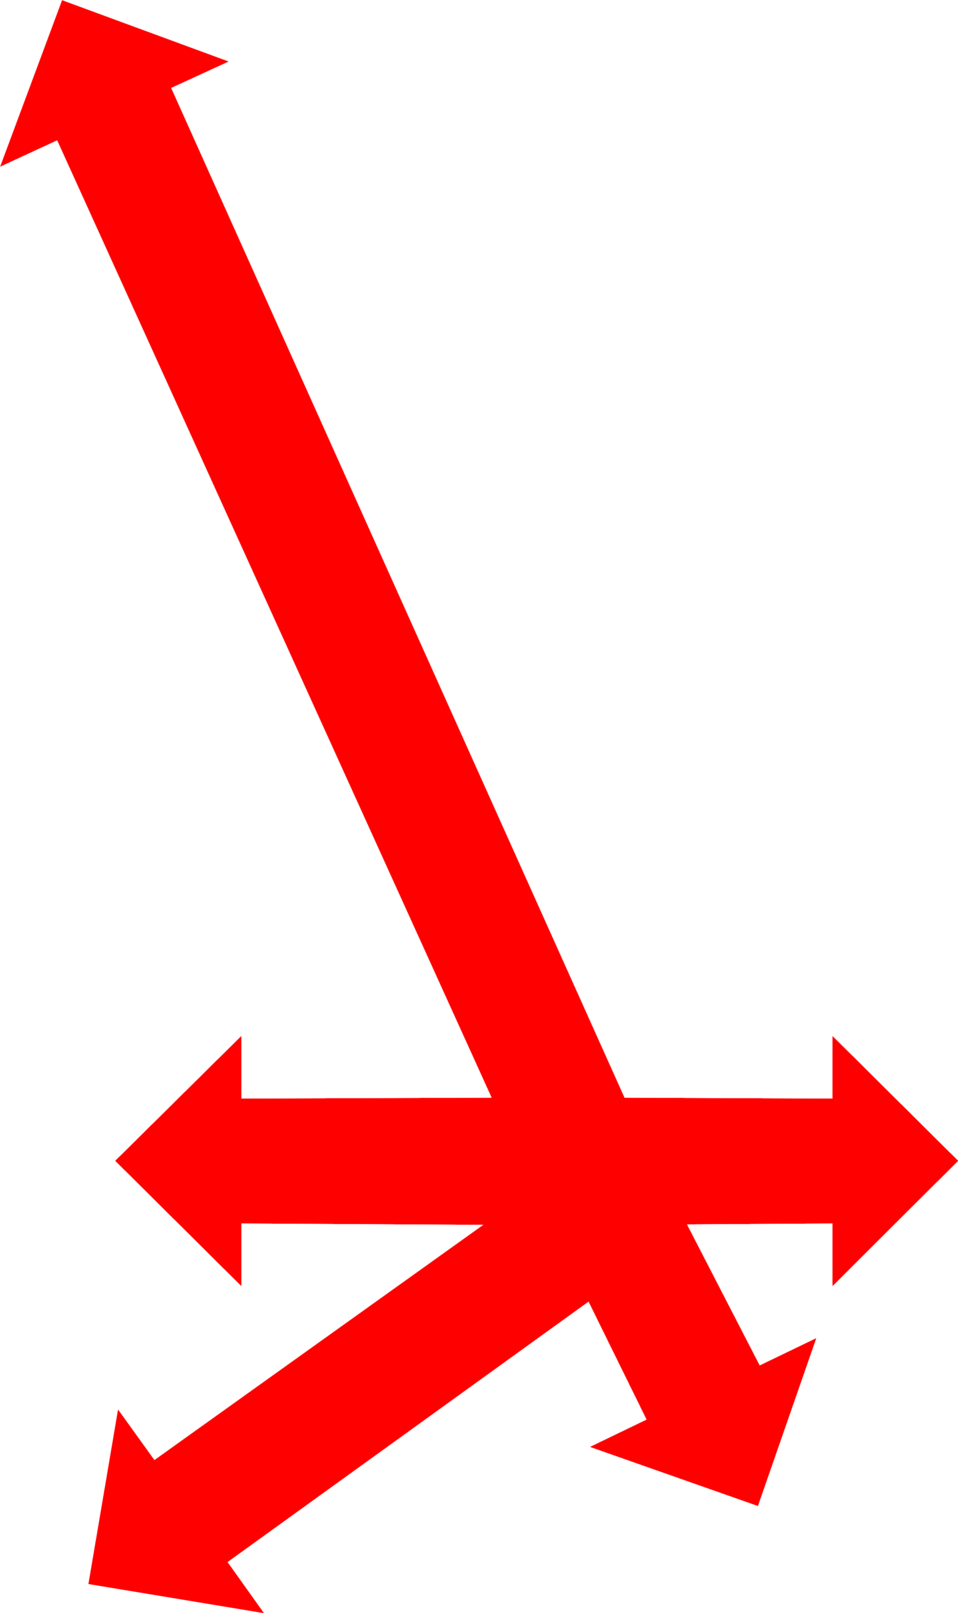 Arrows red free stock. Clipart arrow graph